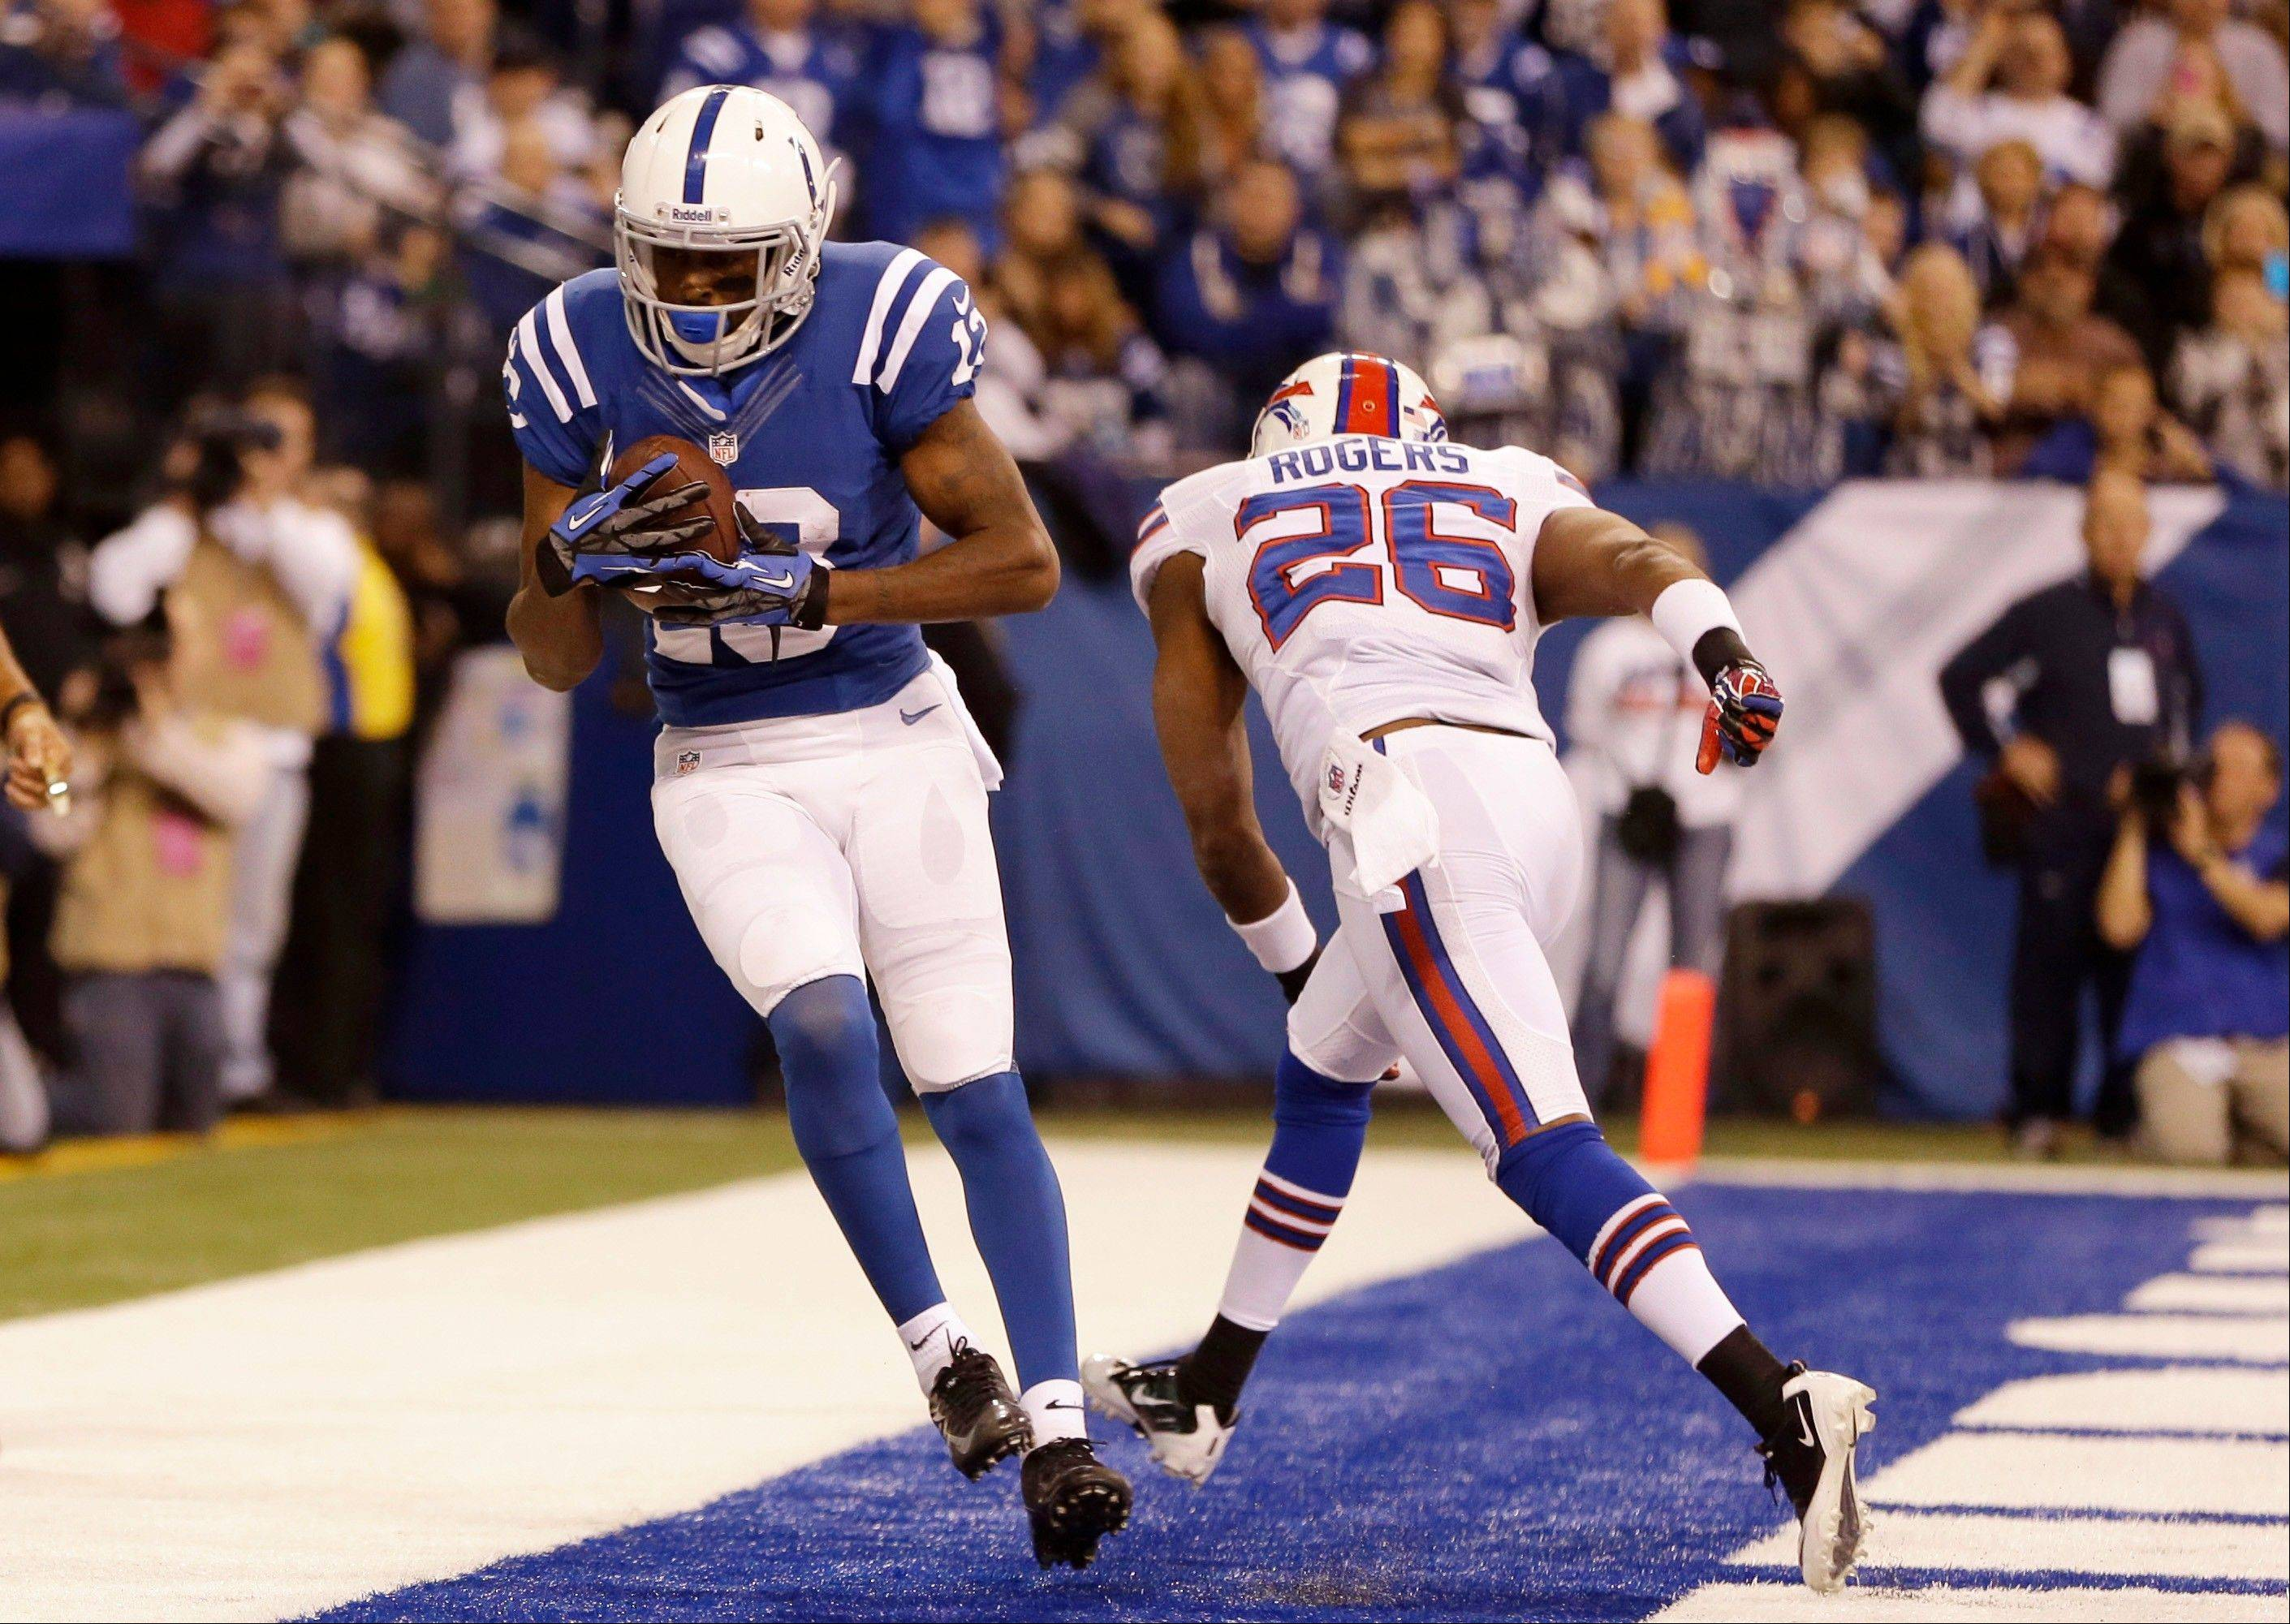 Colts wide receiver T.Y. Hilton, left, makes a catch in the end zone in front of Buffalo Bills defensive back Justin Rogers for a touchdown during the second half Sunday in Indianapolis.